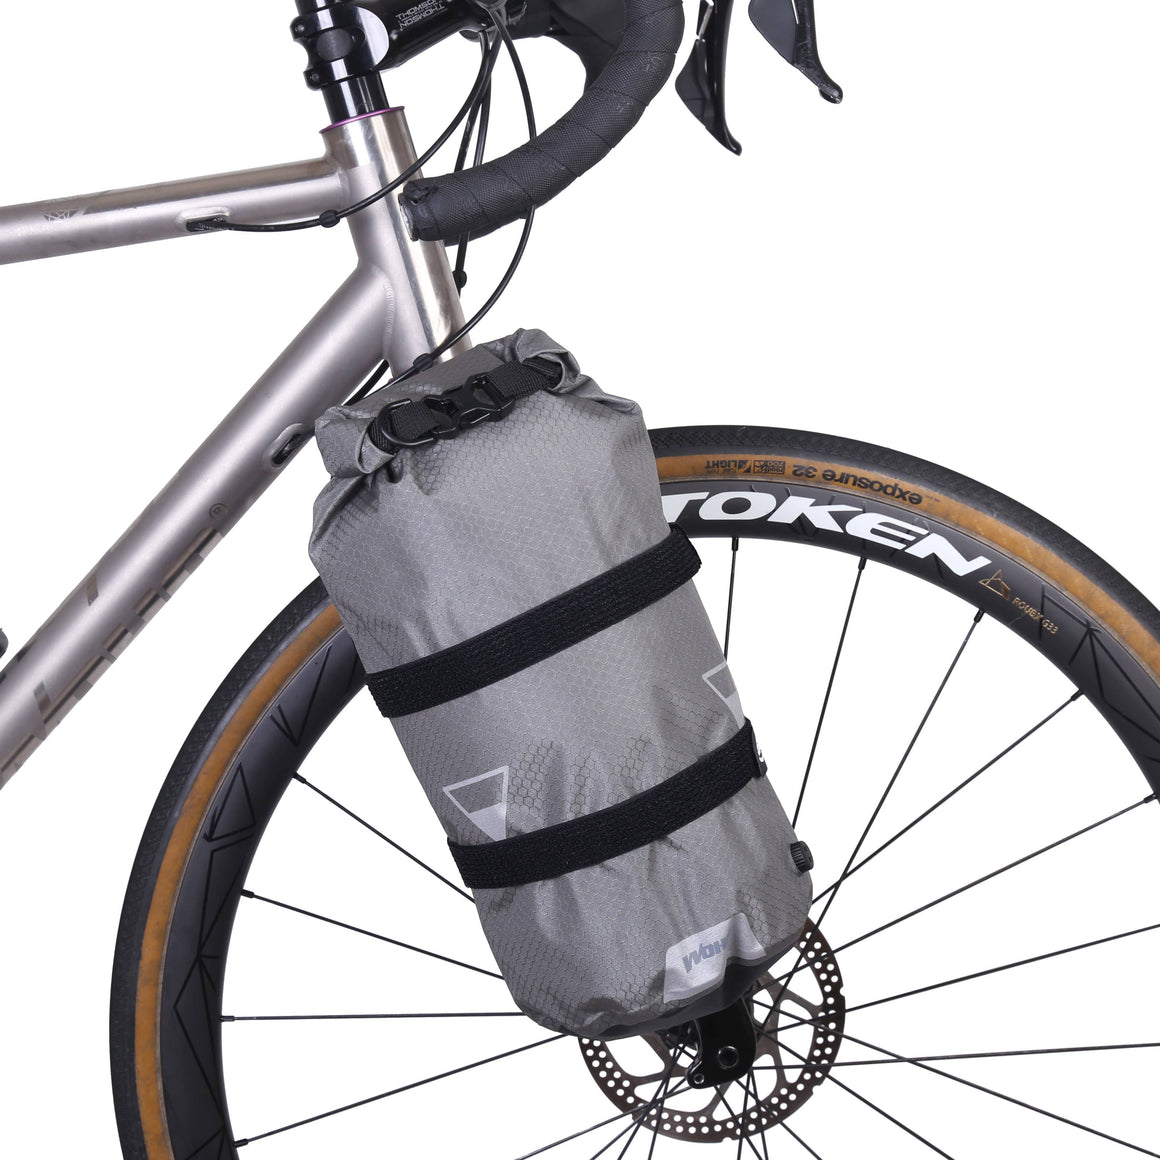 Bikepacking Ultralight 15L Fork Bag with Cage and Grips - Cycle Touring Life